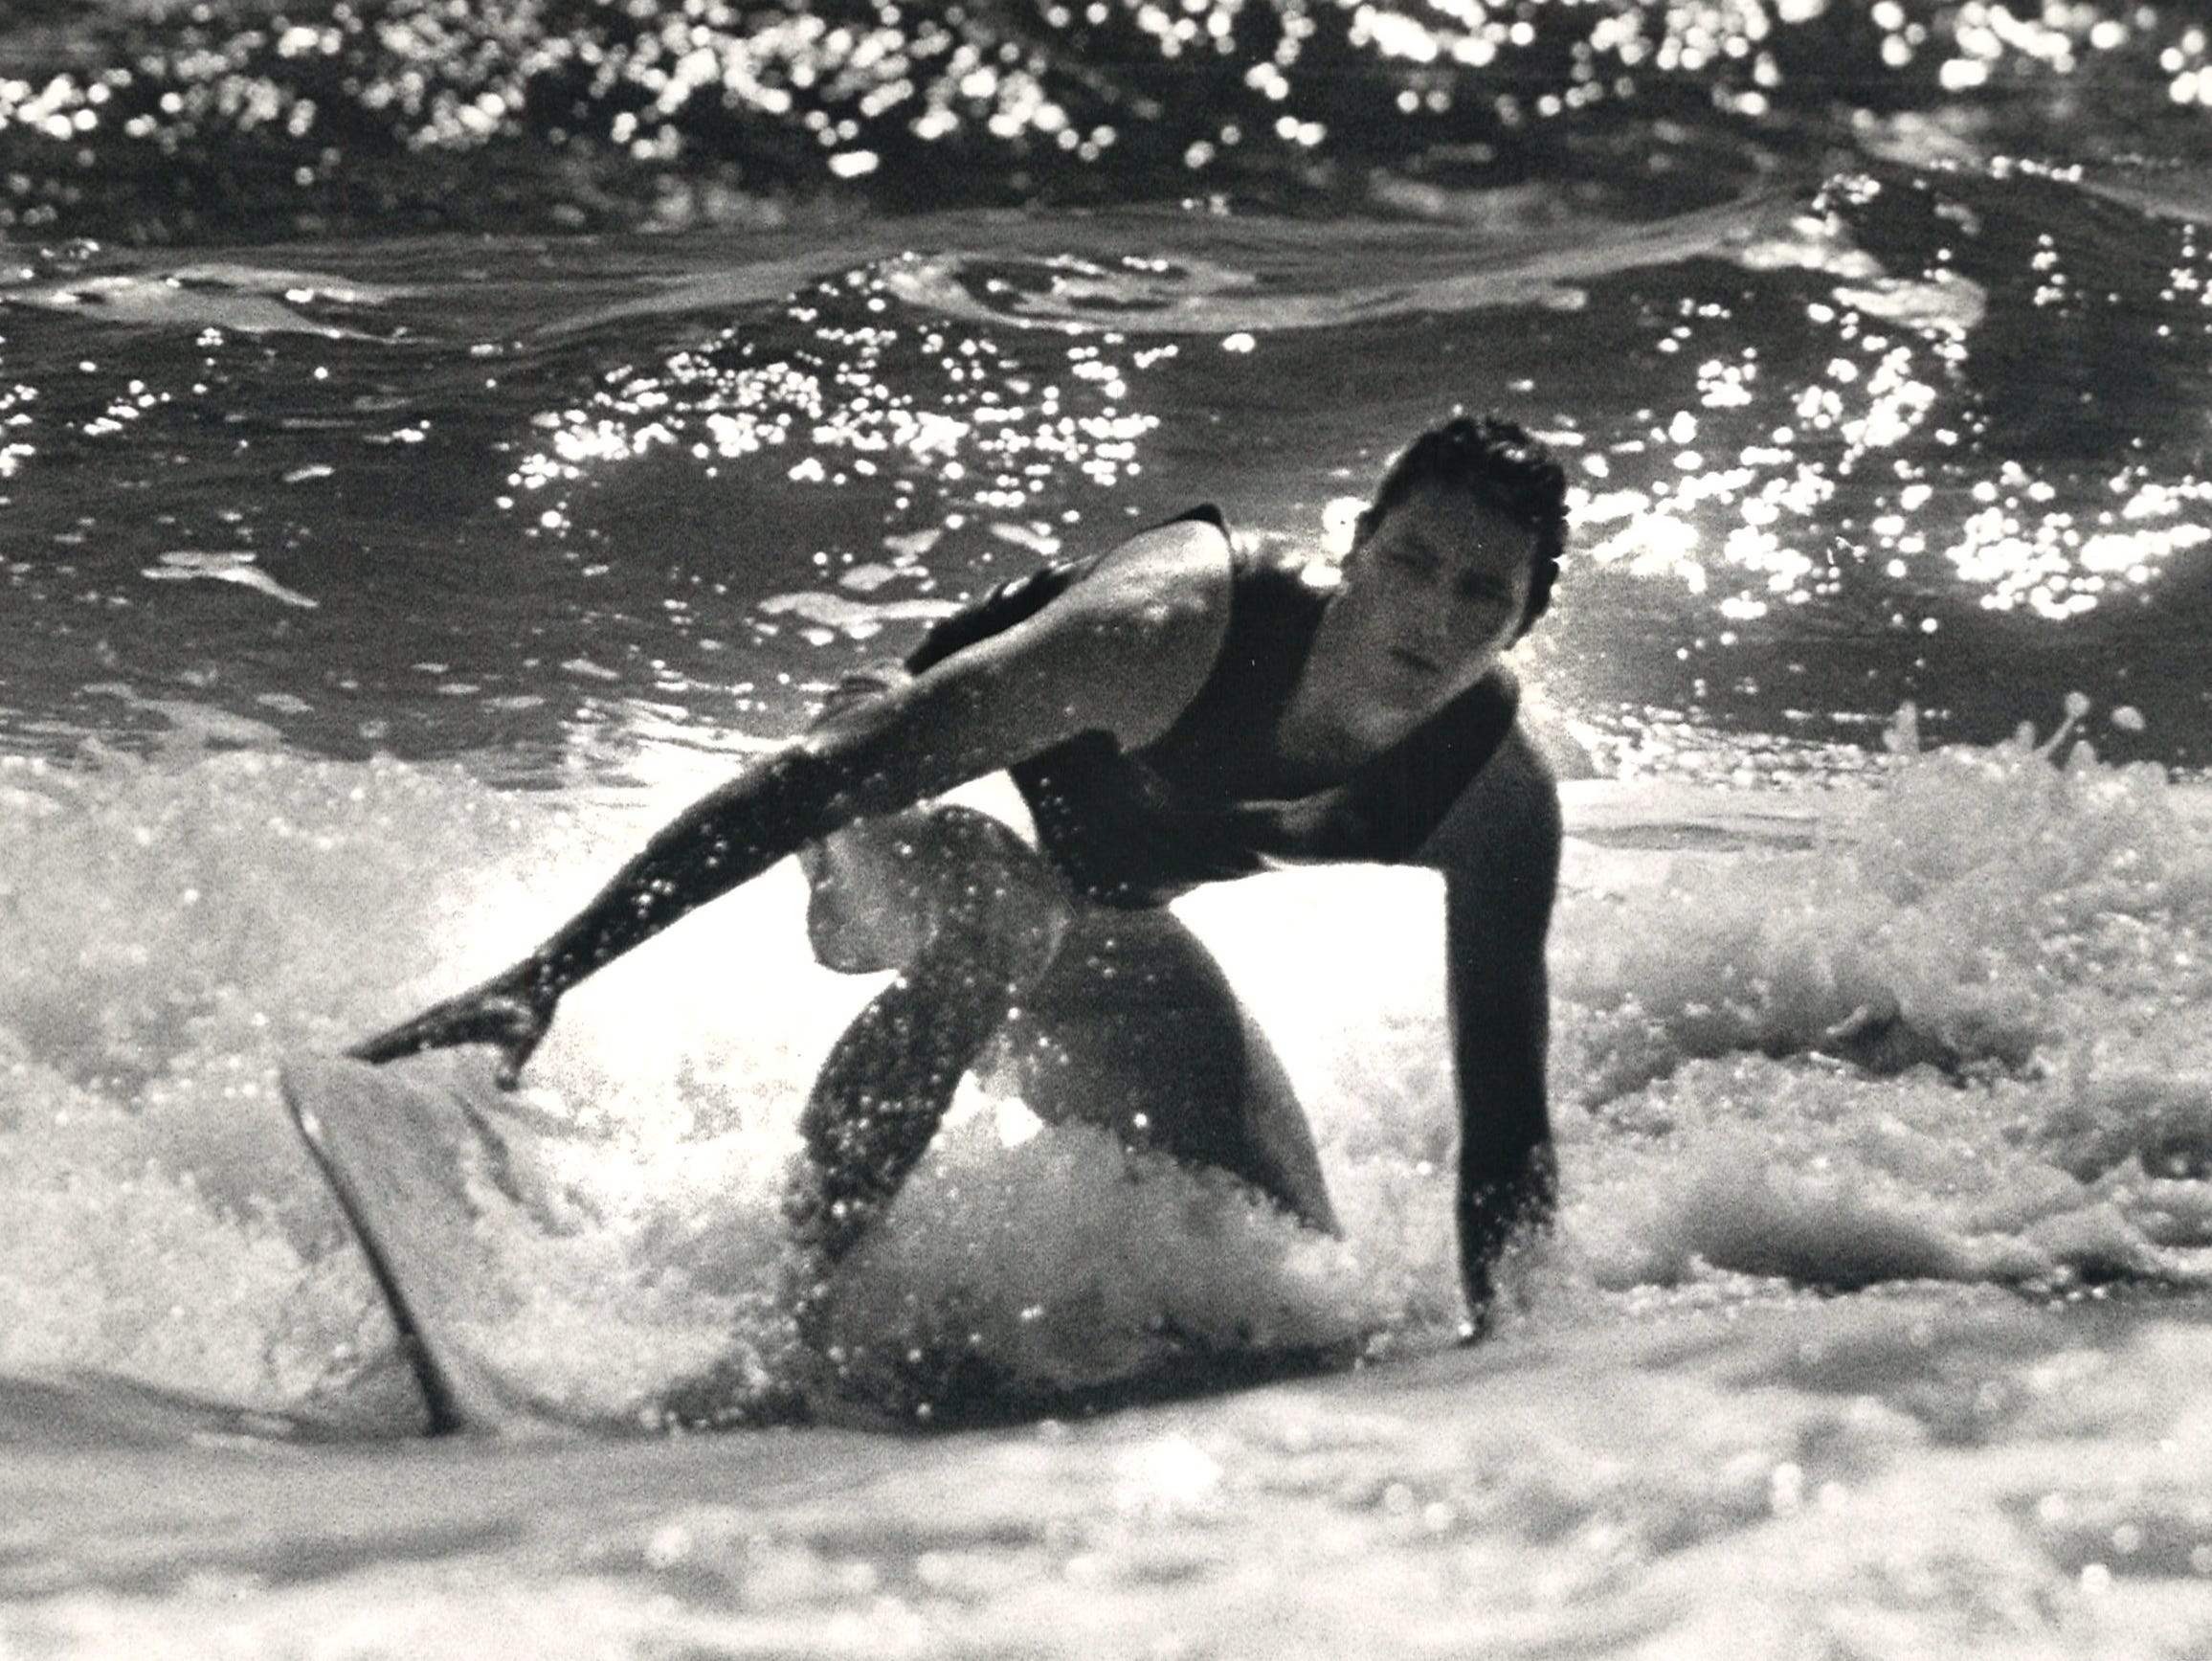 One of the contestants in the Off Shore/Raisins Texas Pro Am Surfing Classic on March 29, 1986